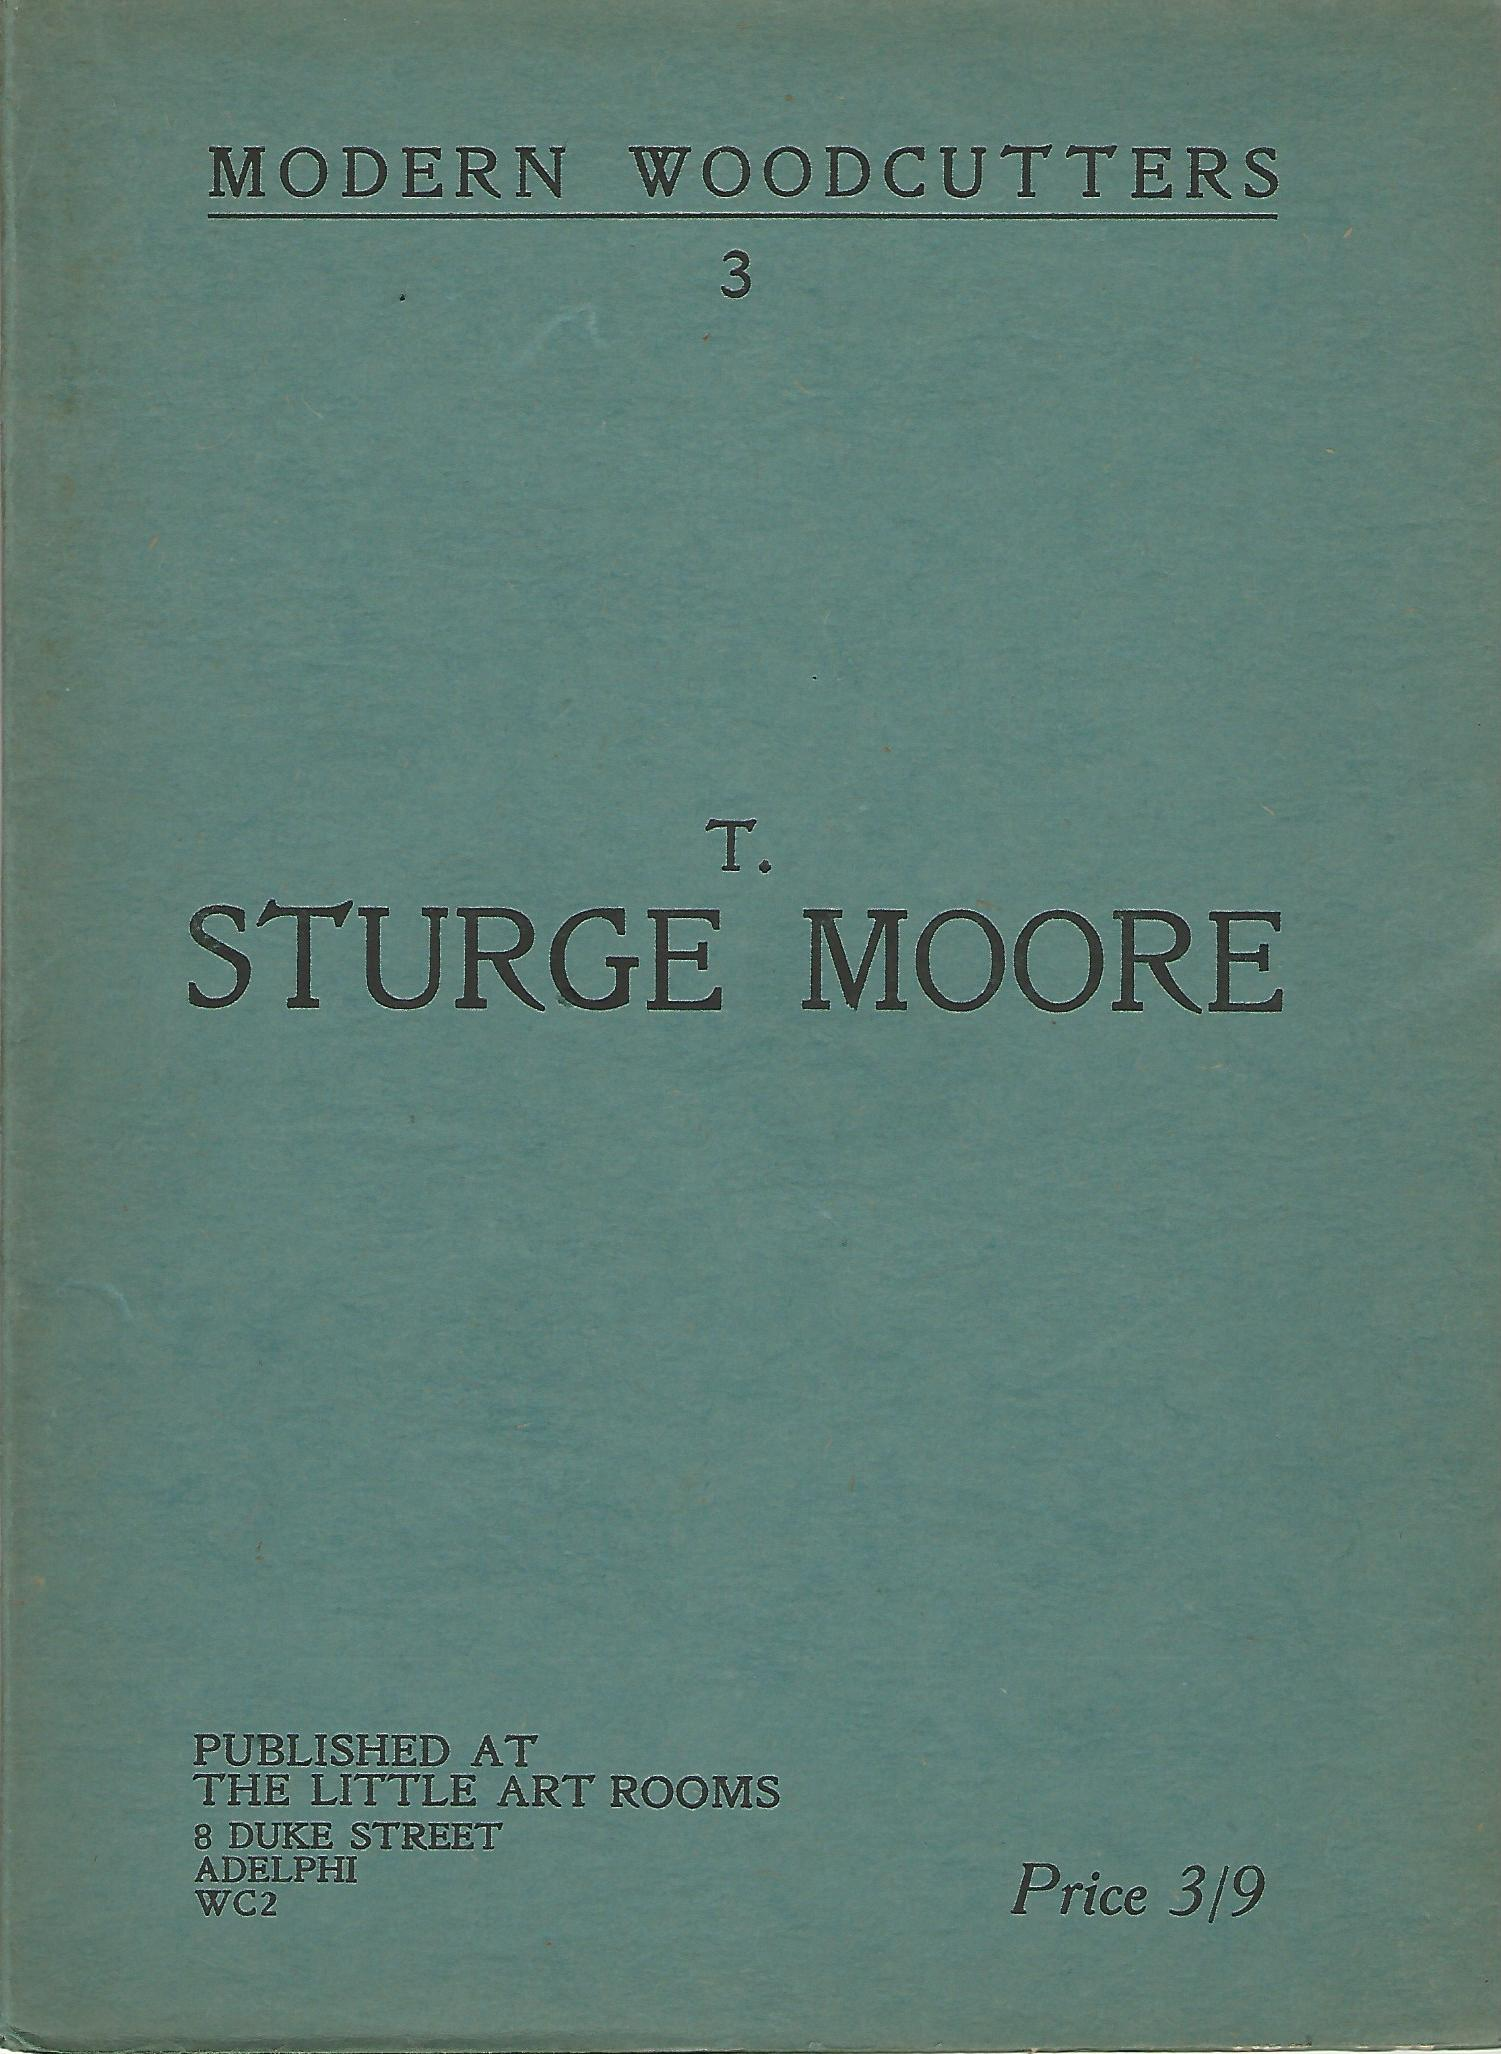 Image for Modern Woodcutters: 3, T. Sturge Moore.